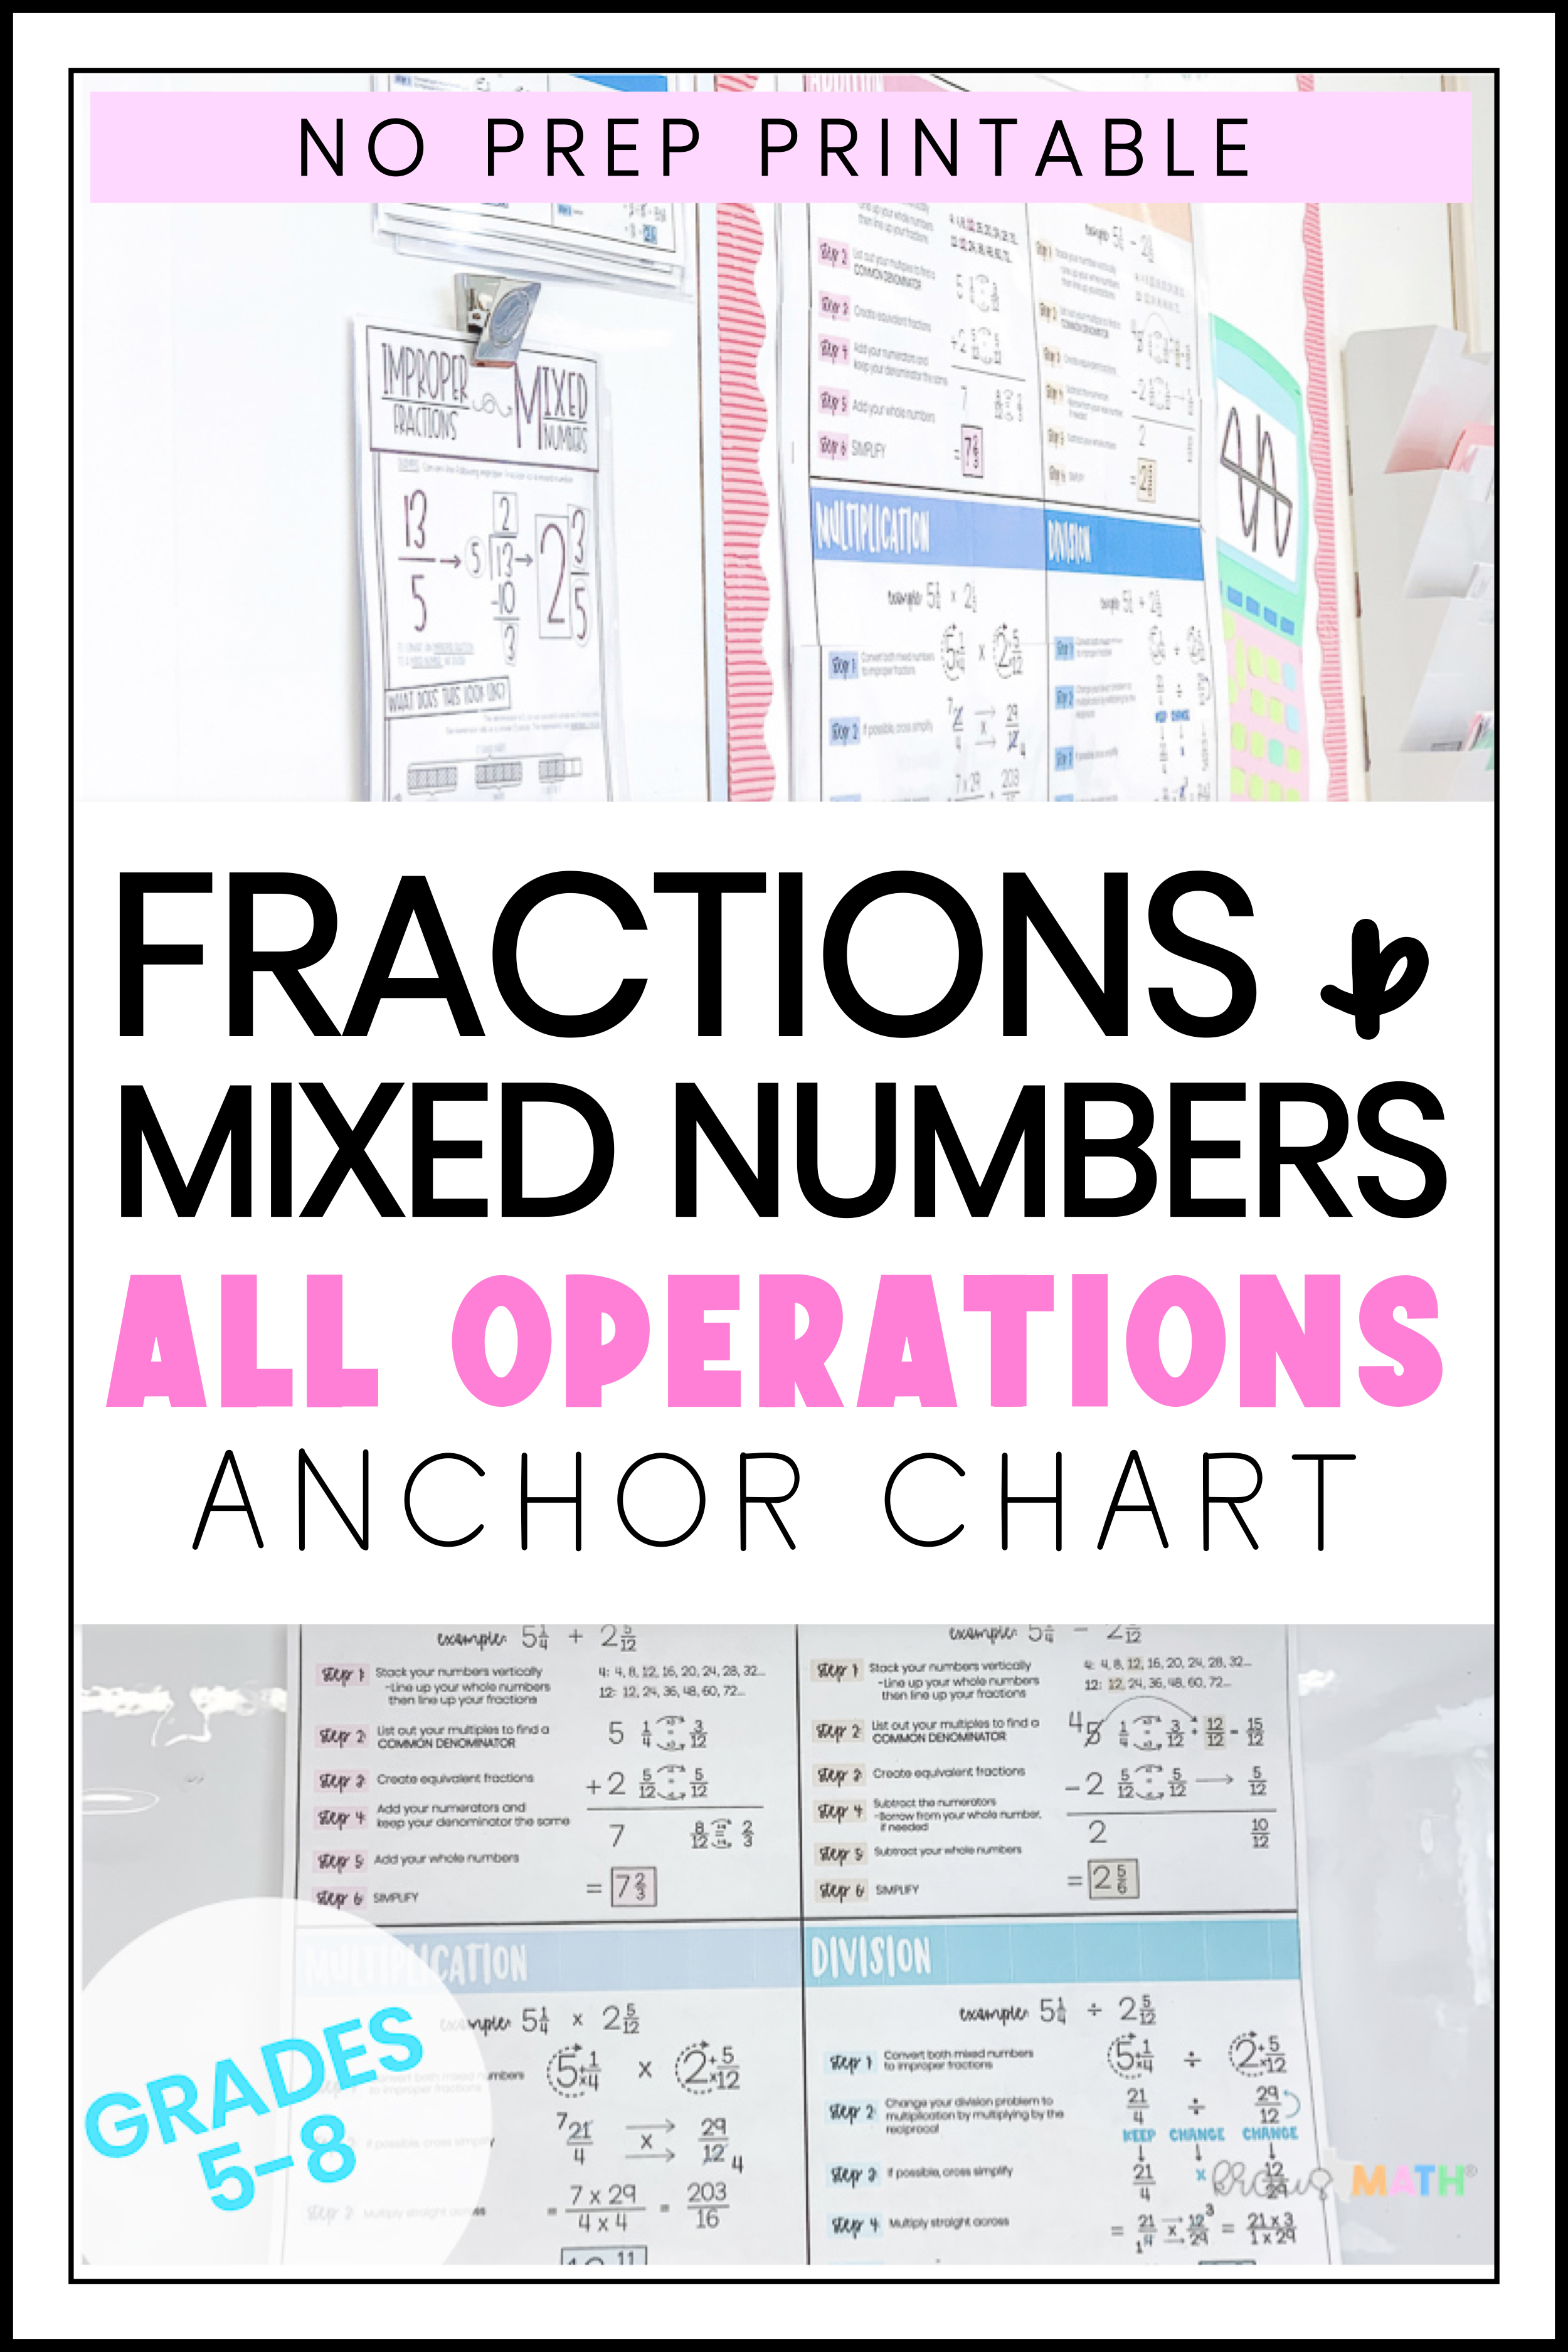 Mixed Number Amp Fraction Operations Poster Amp Reference